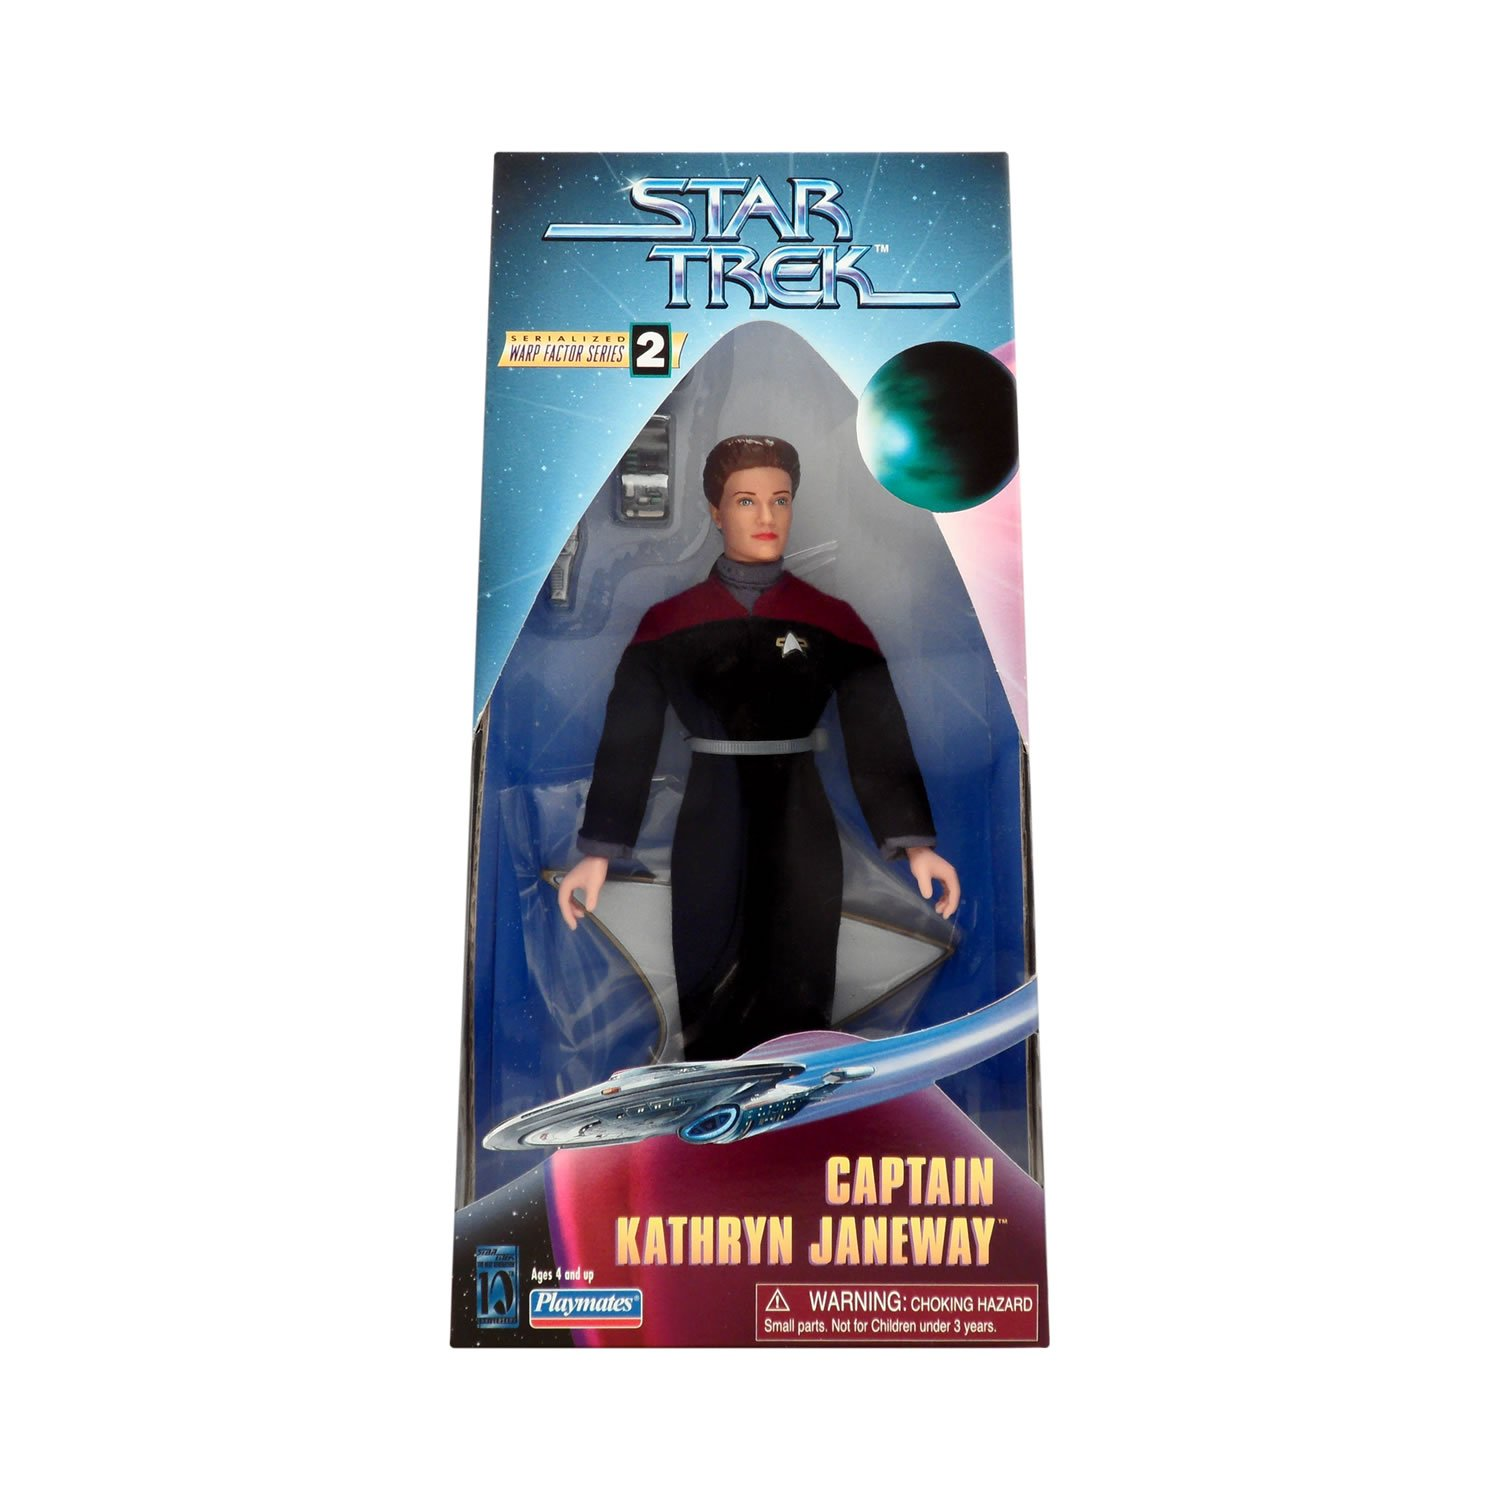 Playmates Star Trek Voyager Kathryn Janeway 9in Figure by Playmates